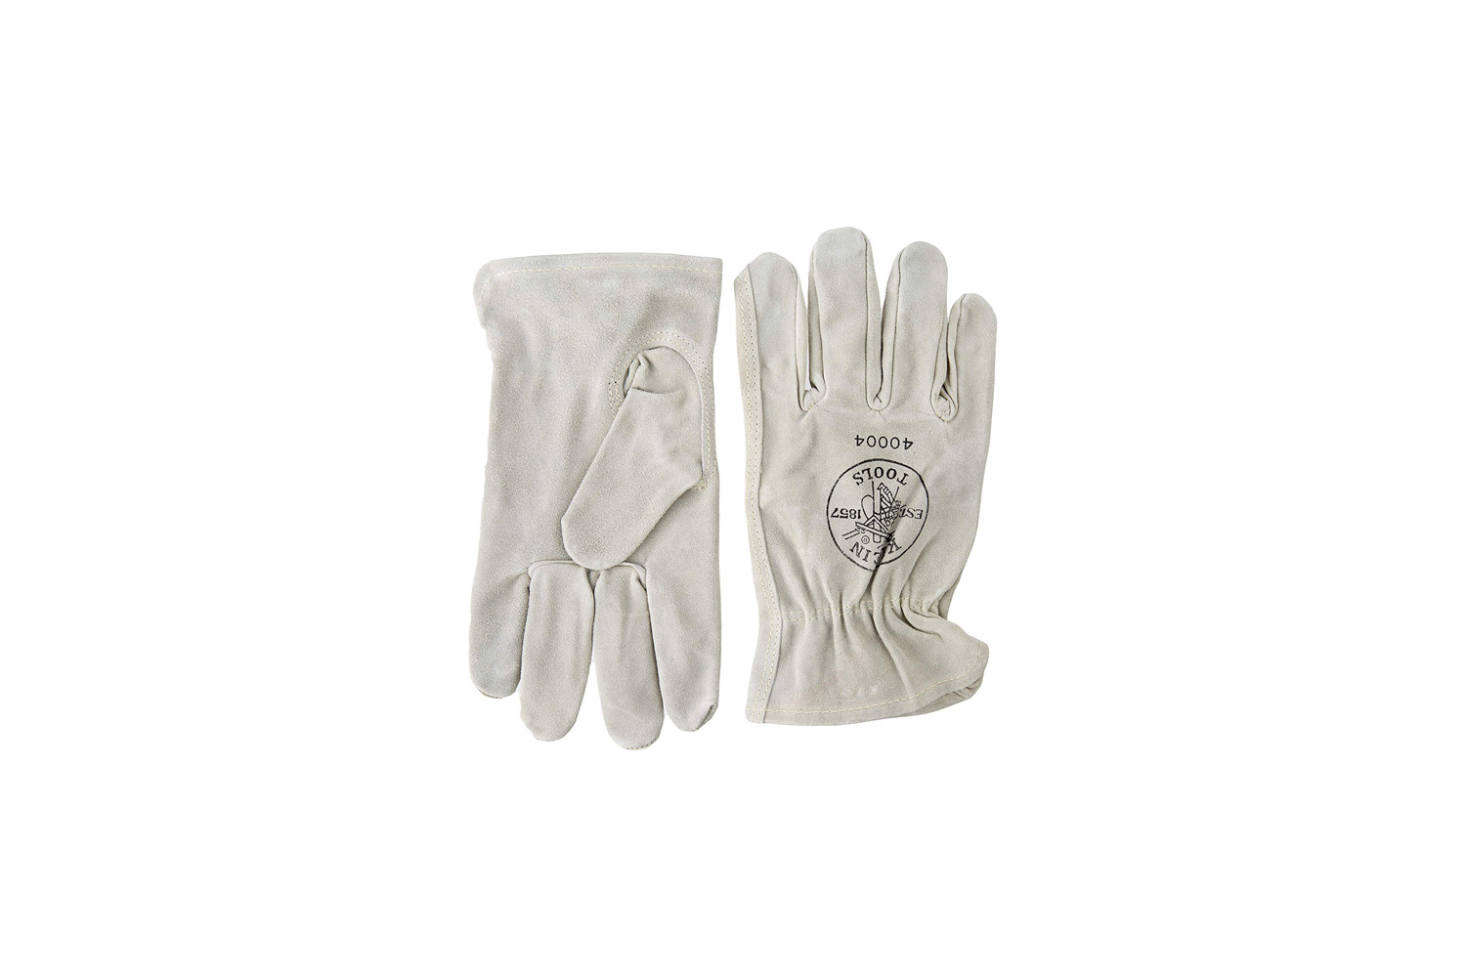 The Klein Tools 40004 Cowhide Driver's Gloves made of white sueded cowhide are available in medium and large for $16.06 on Amazon Prime. (The small size is available from other sellers on Amazon that aren't associated with Prime shipping.)